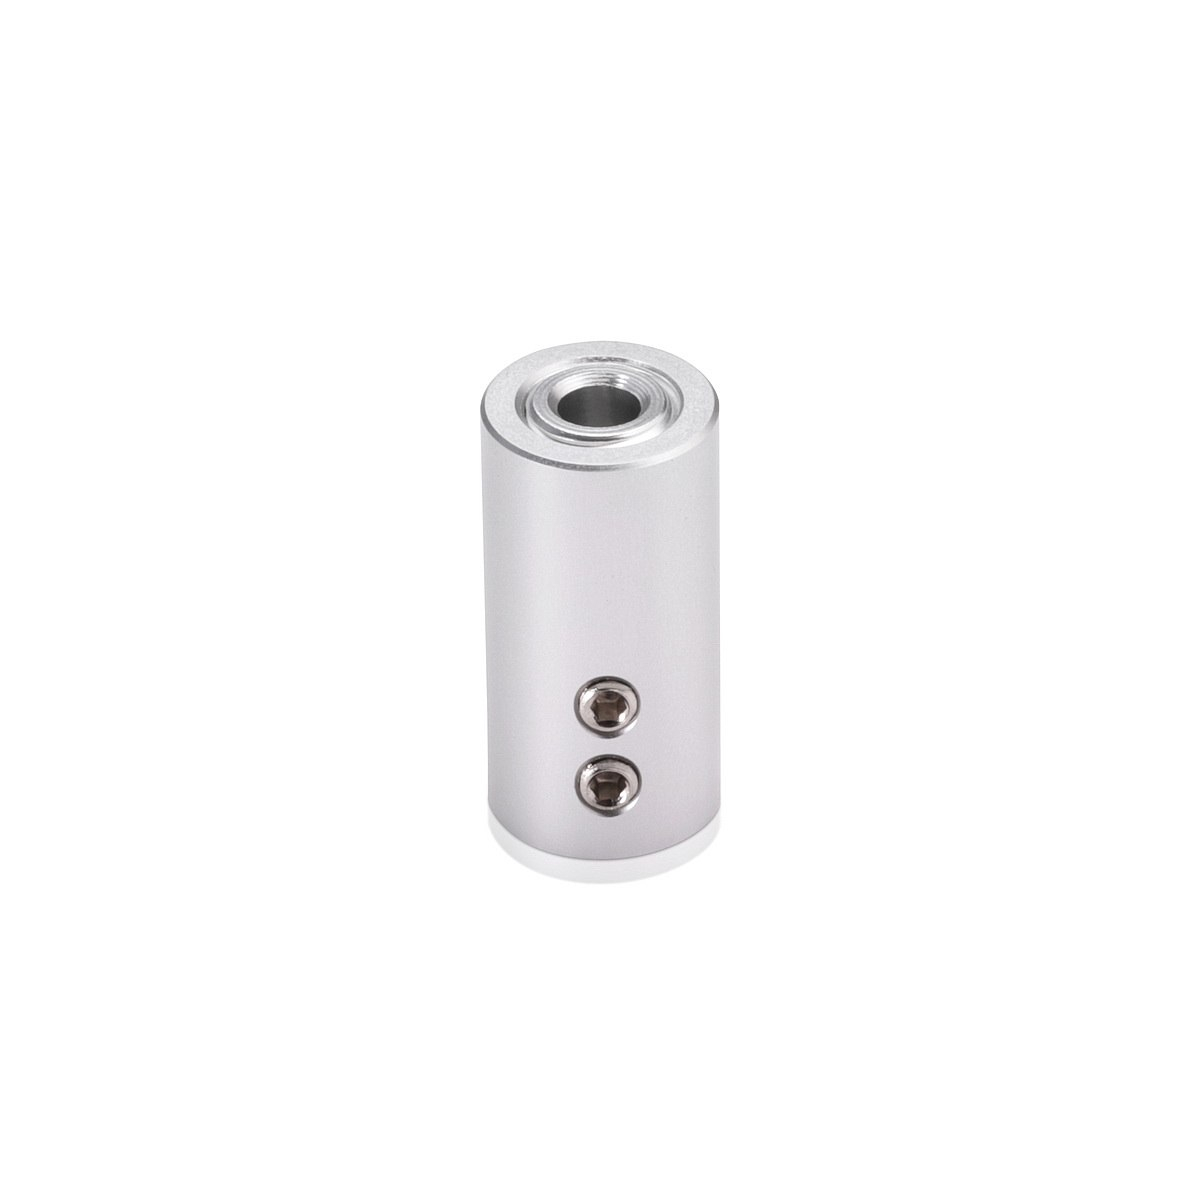 Aluminum Ceiling Mounted Material Holder, Clear Anodized Finish